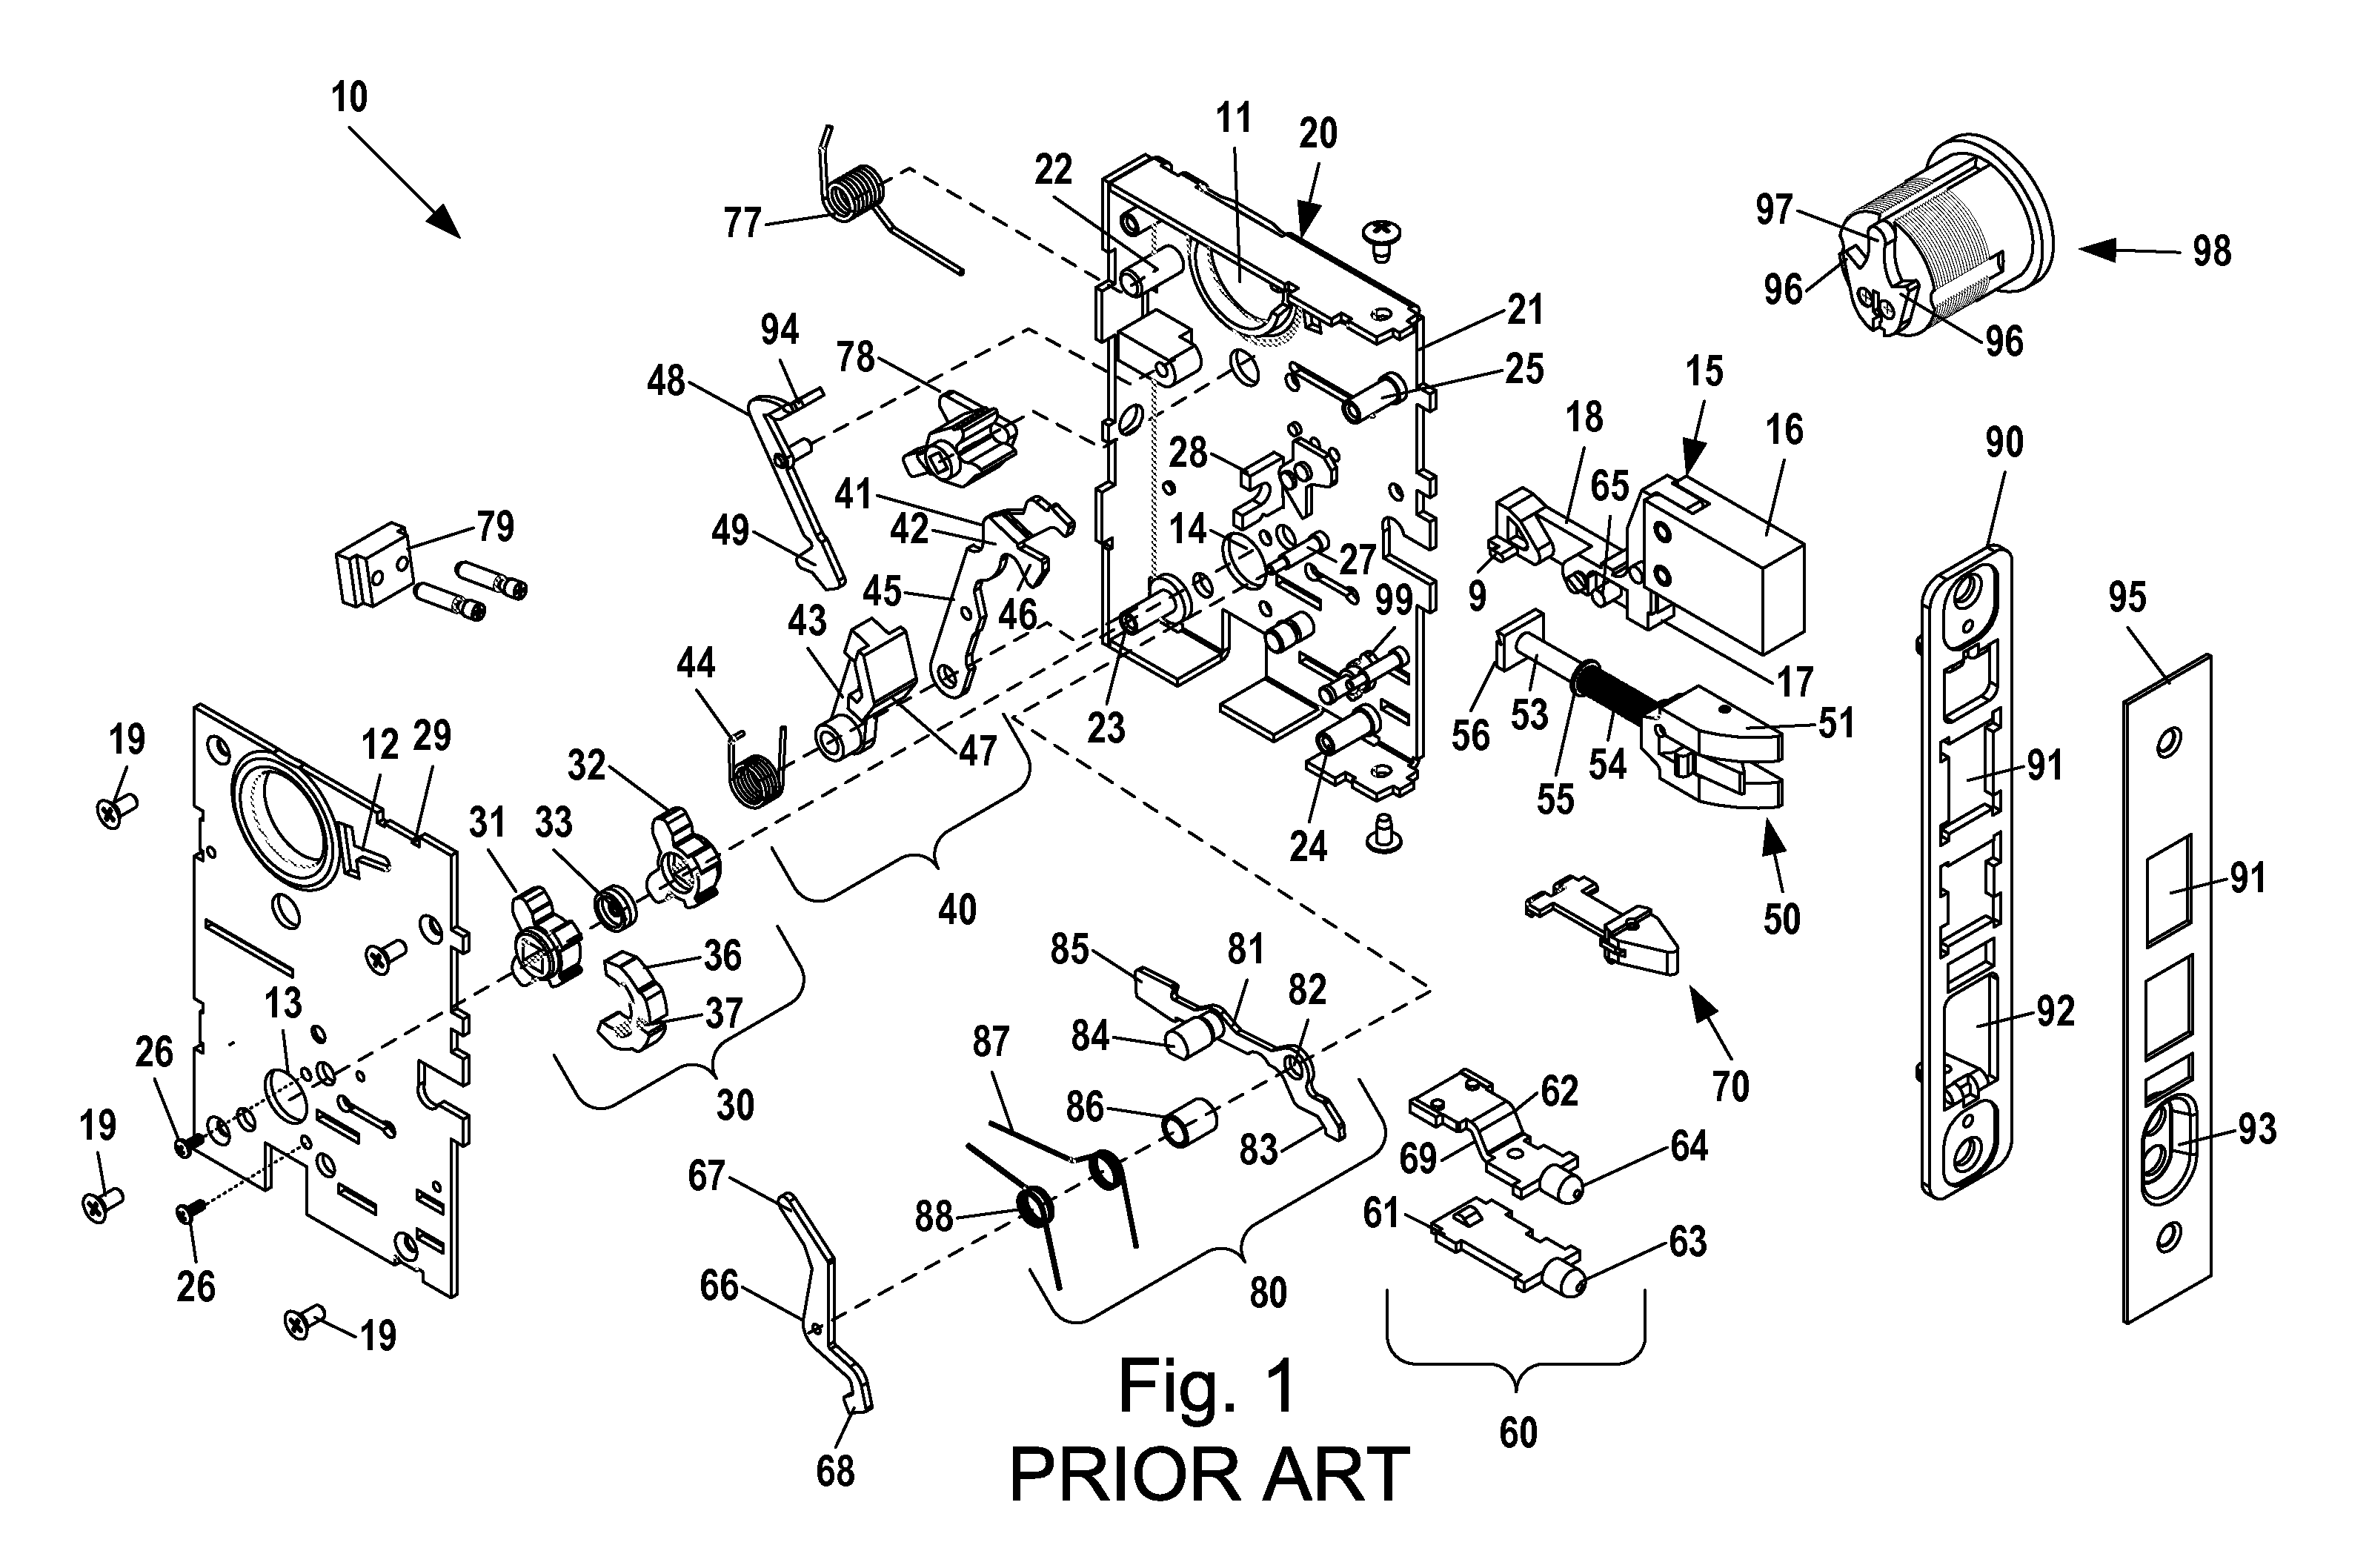 Mortise Lock Parts Diagram Schlage 9050 Mortise Lock Parts